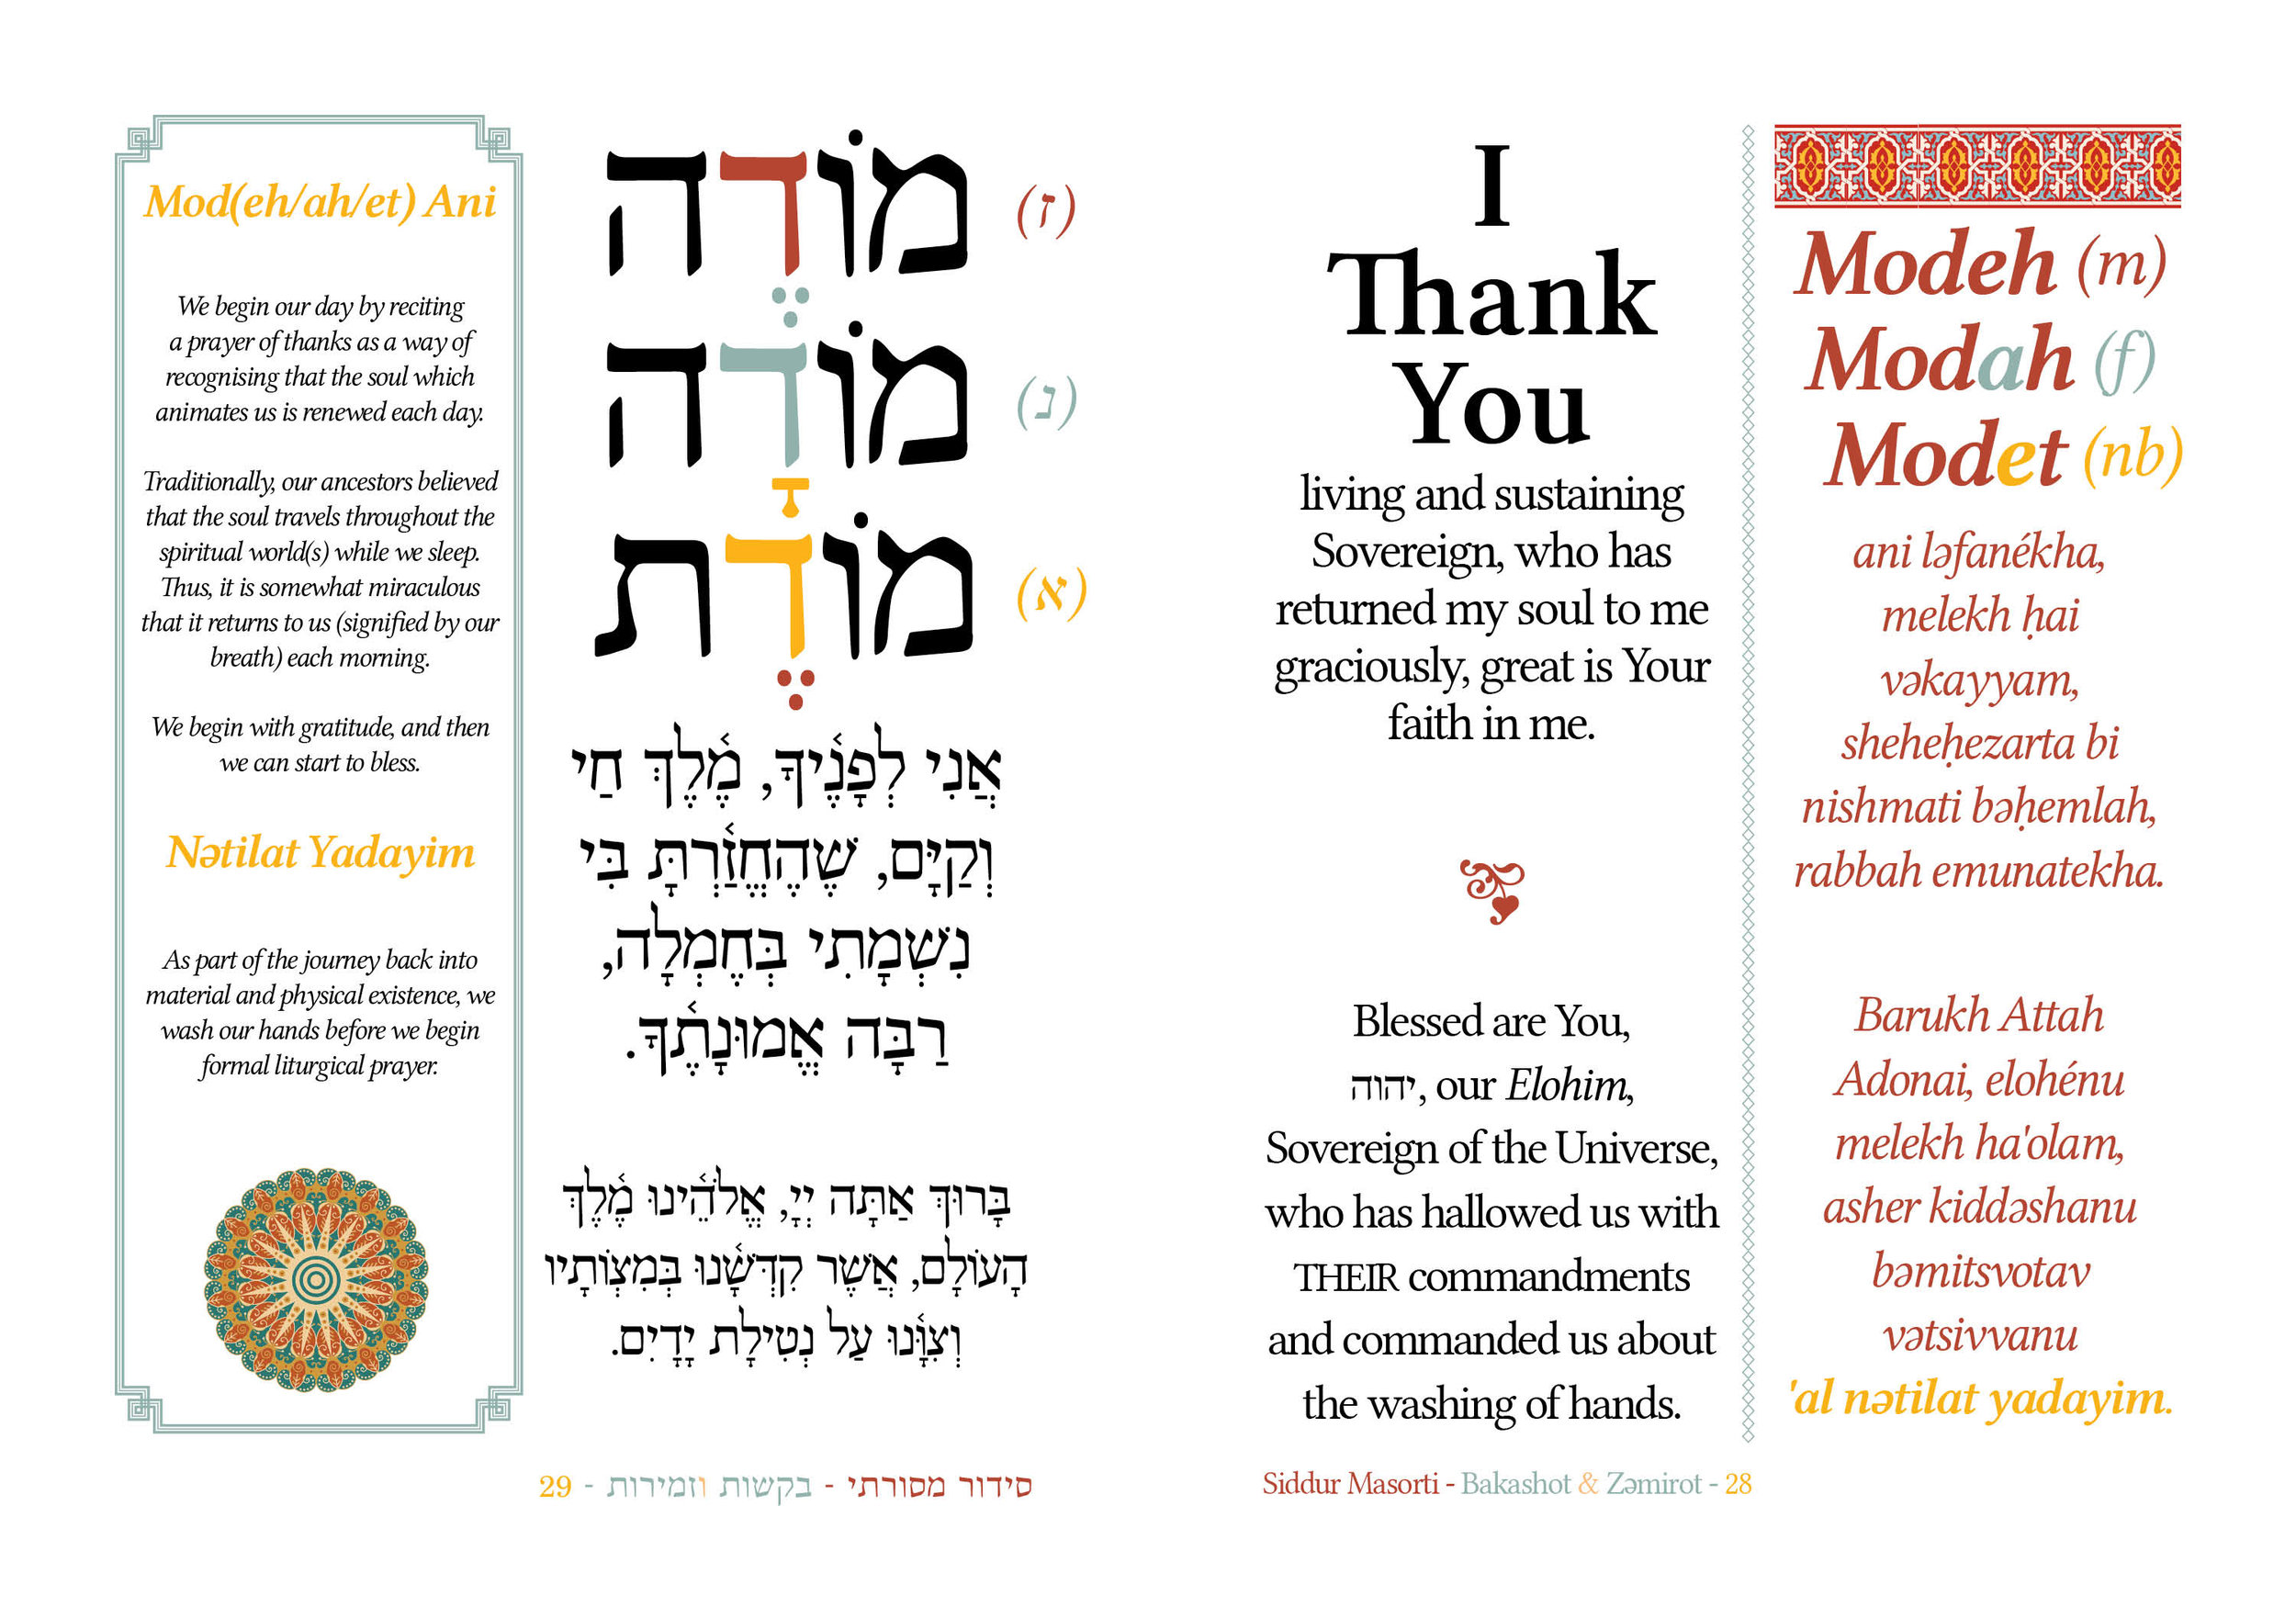 This page, which showcases the early morning blessings, features one of the aspects of our siddur of which I am proudest: the ability to be gender-inclusive while keeping to a traditional text. In our siddur, not only can you find both Modeh (masc.) and Modah (fem.) but also a non-binary formulation (Modet). This follows the scheme developed by Lior Gross and the Nonbinary Hebrew Project.